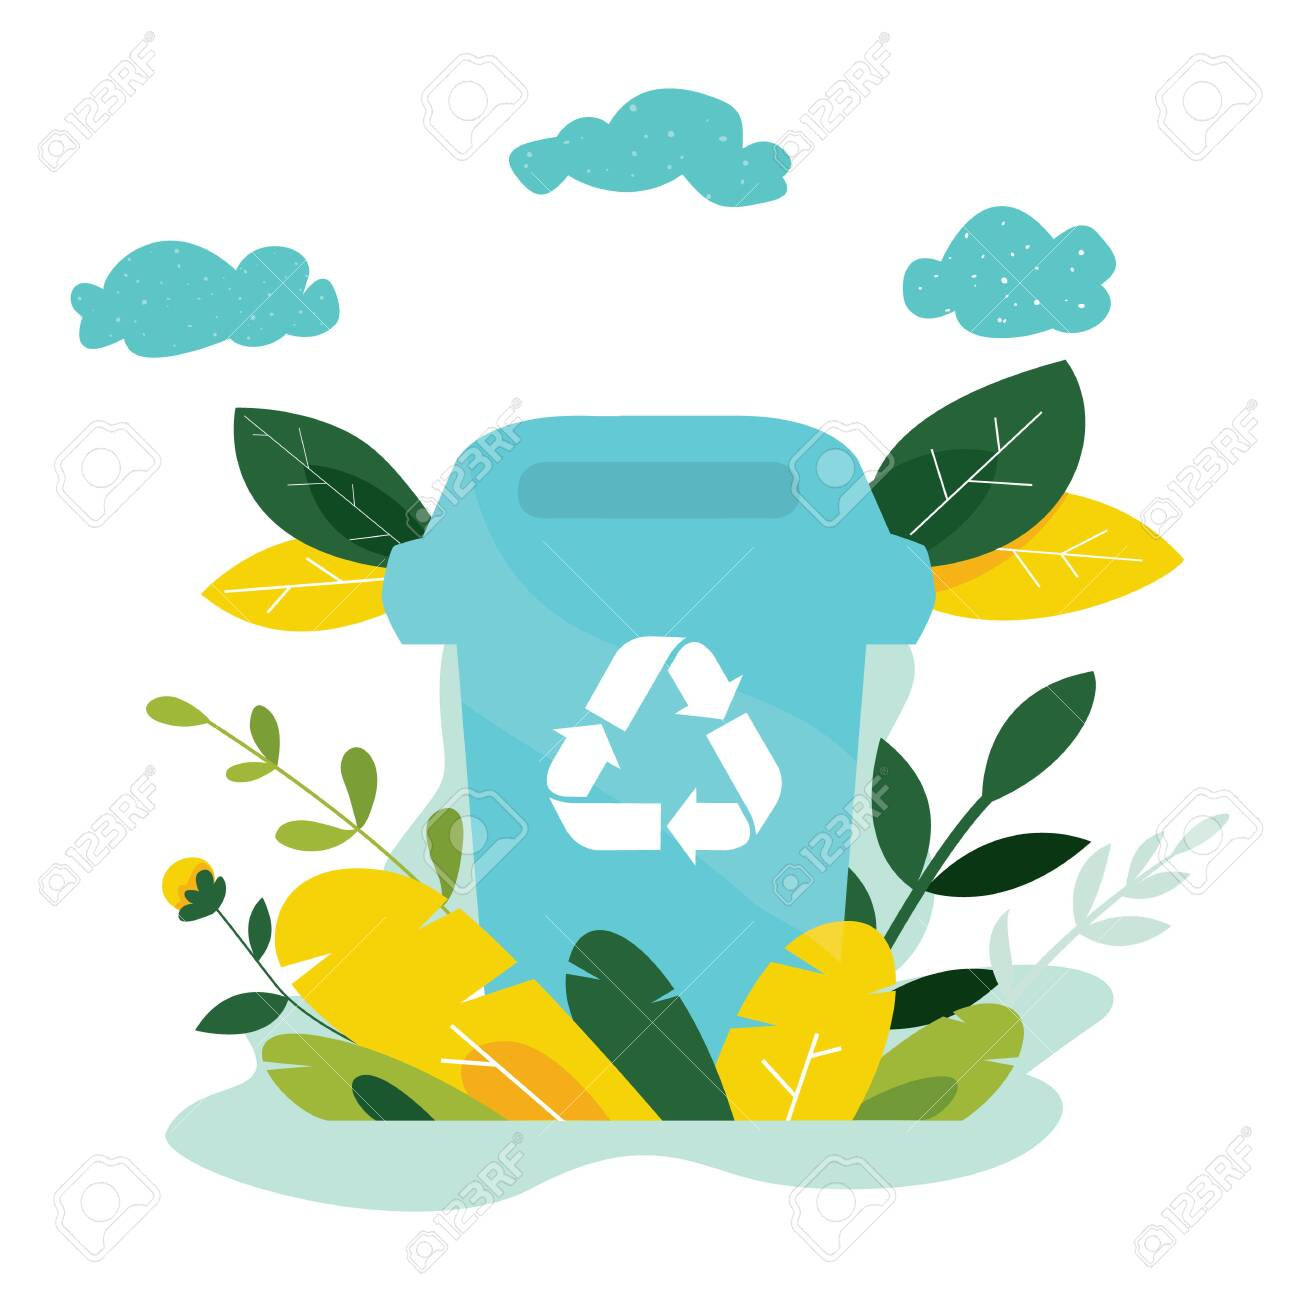 Ecology concept. Protect nature and ecology banner. Earth day. Garbage container with trees, plants. Vector illustration. - 134587489